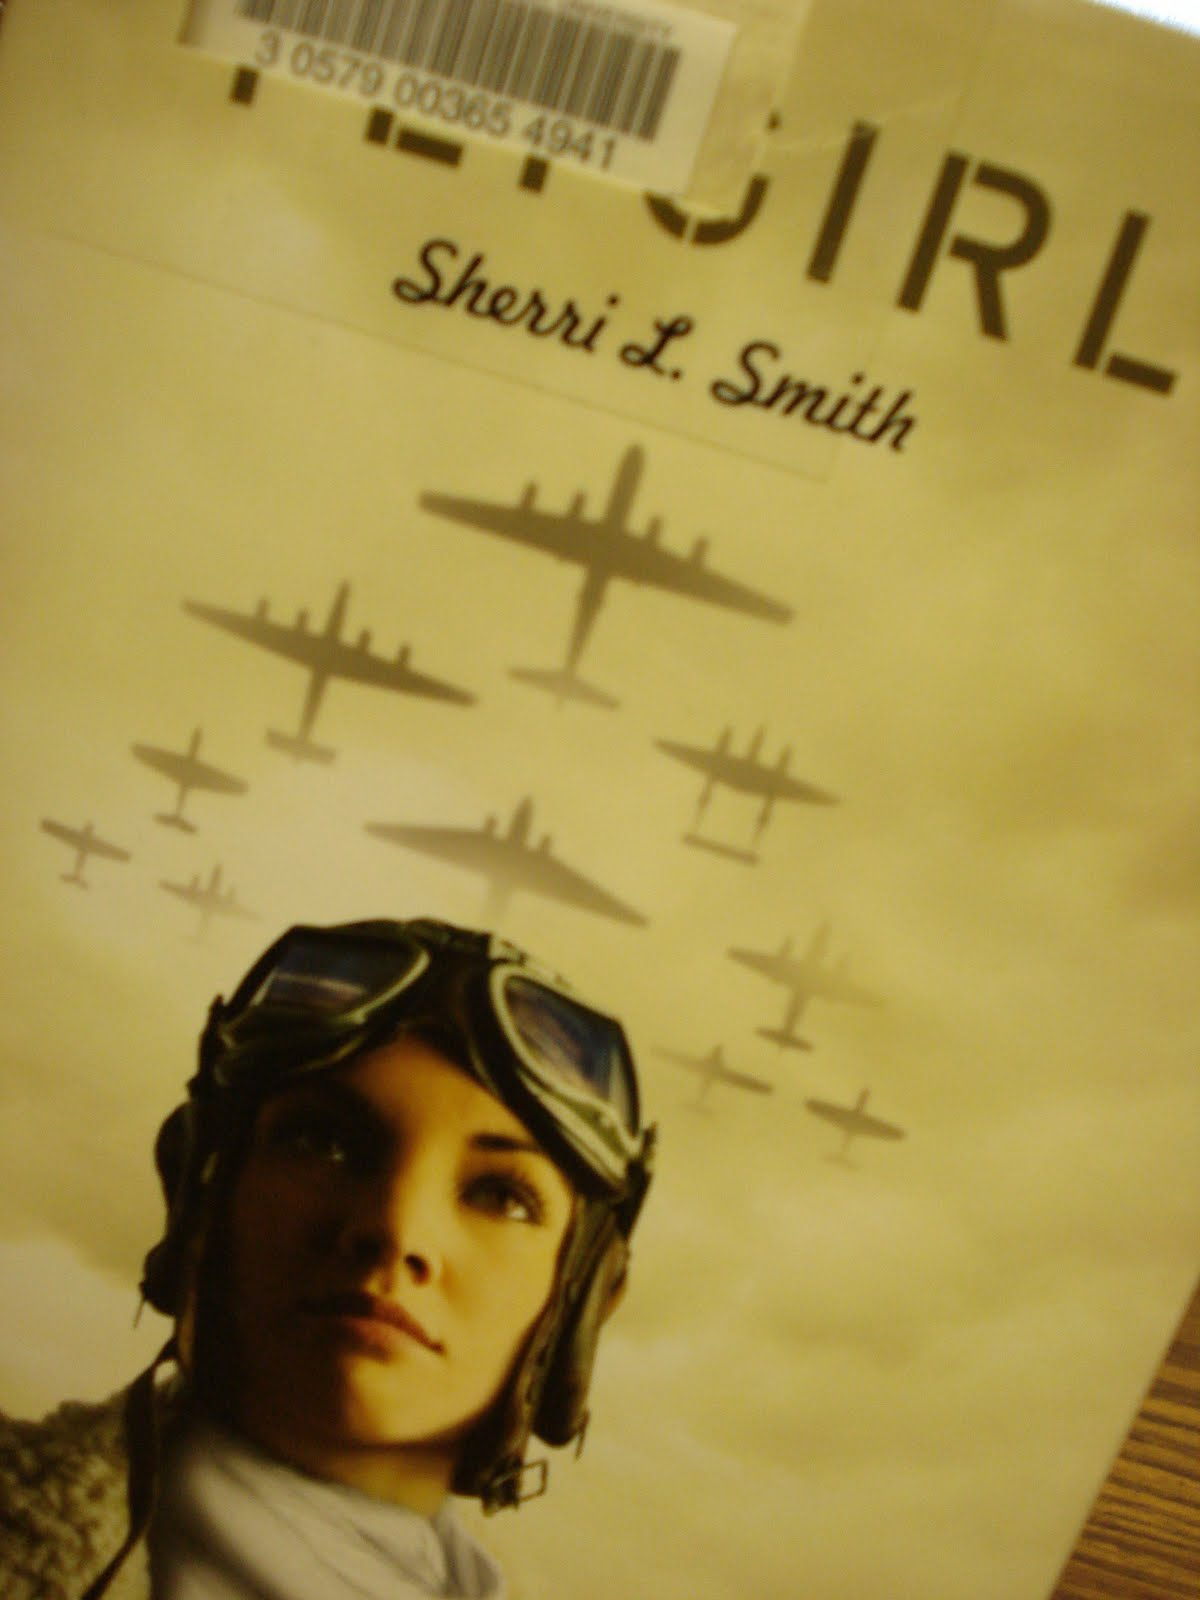 book report on flygirl by sherri smith Sherri l smith is the award-winning author of ya novels flygirl was the 2009 california book awards gold medalist sherri was a 2014 national book awards judge in the young people's literature category.